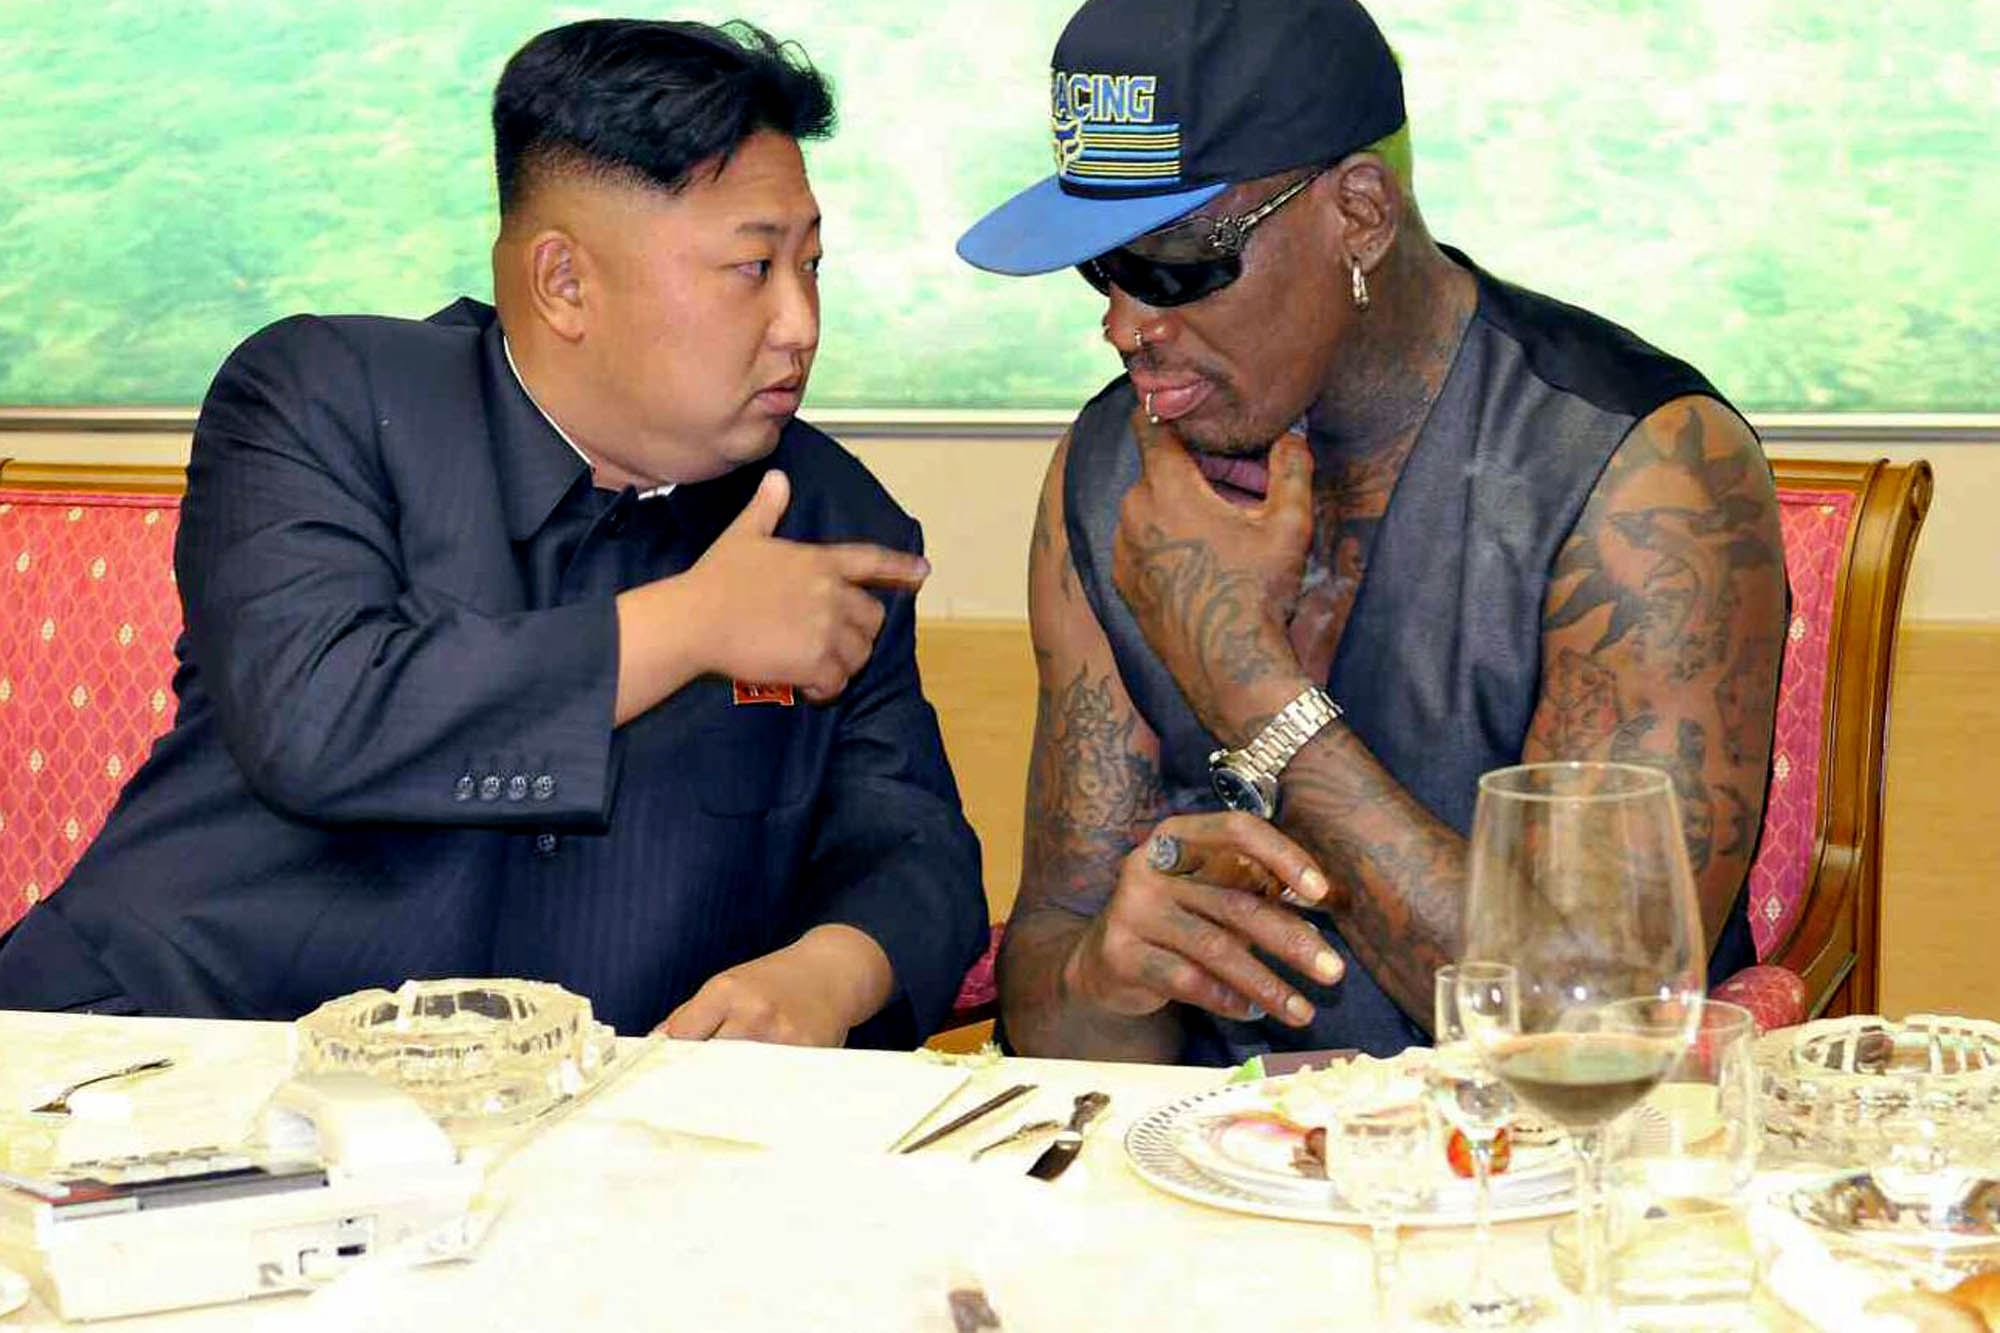 North Korean leader Kim Jong-un meets with former NBA star Dennis Rodman in Pyongyang, North Korea, on September 7th, 2013 Photo: EPA/Rodong Sinmun